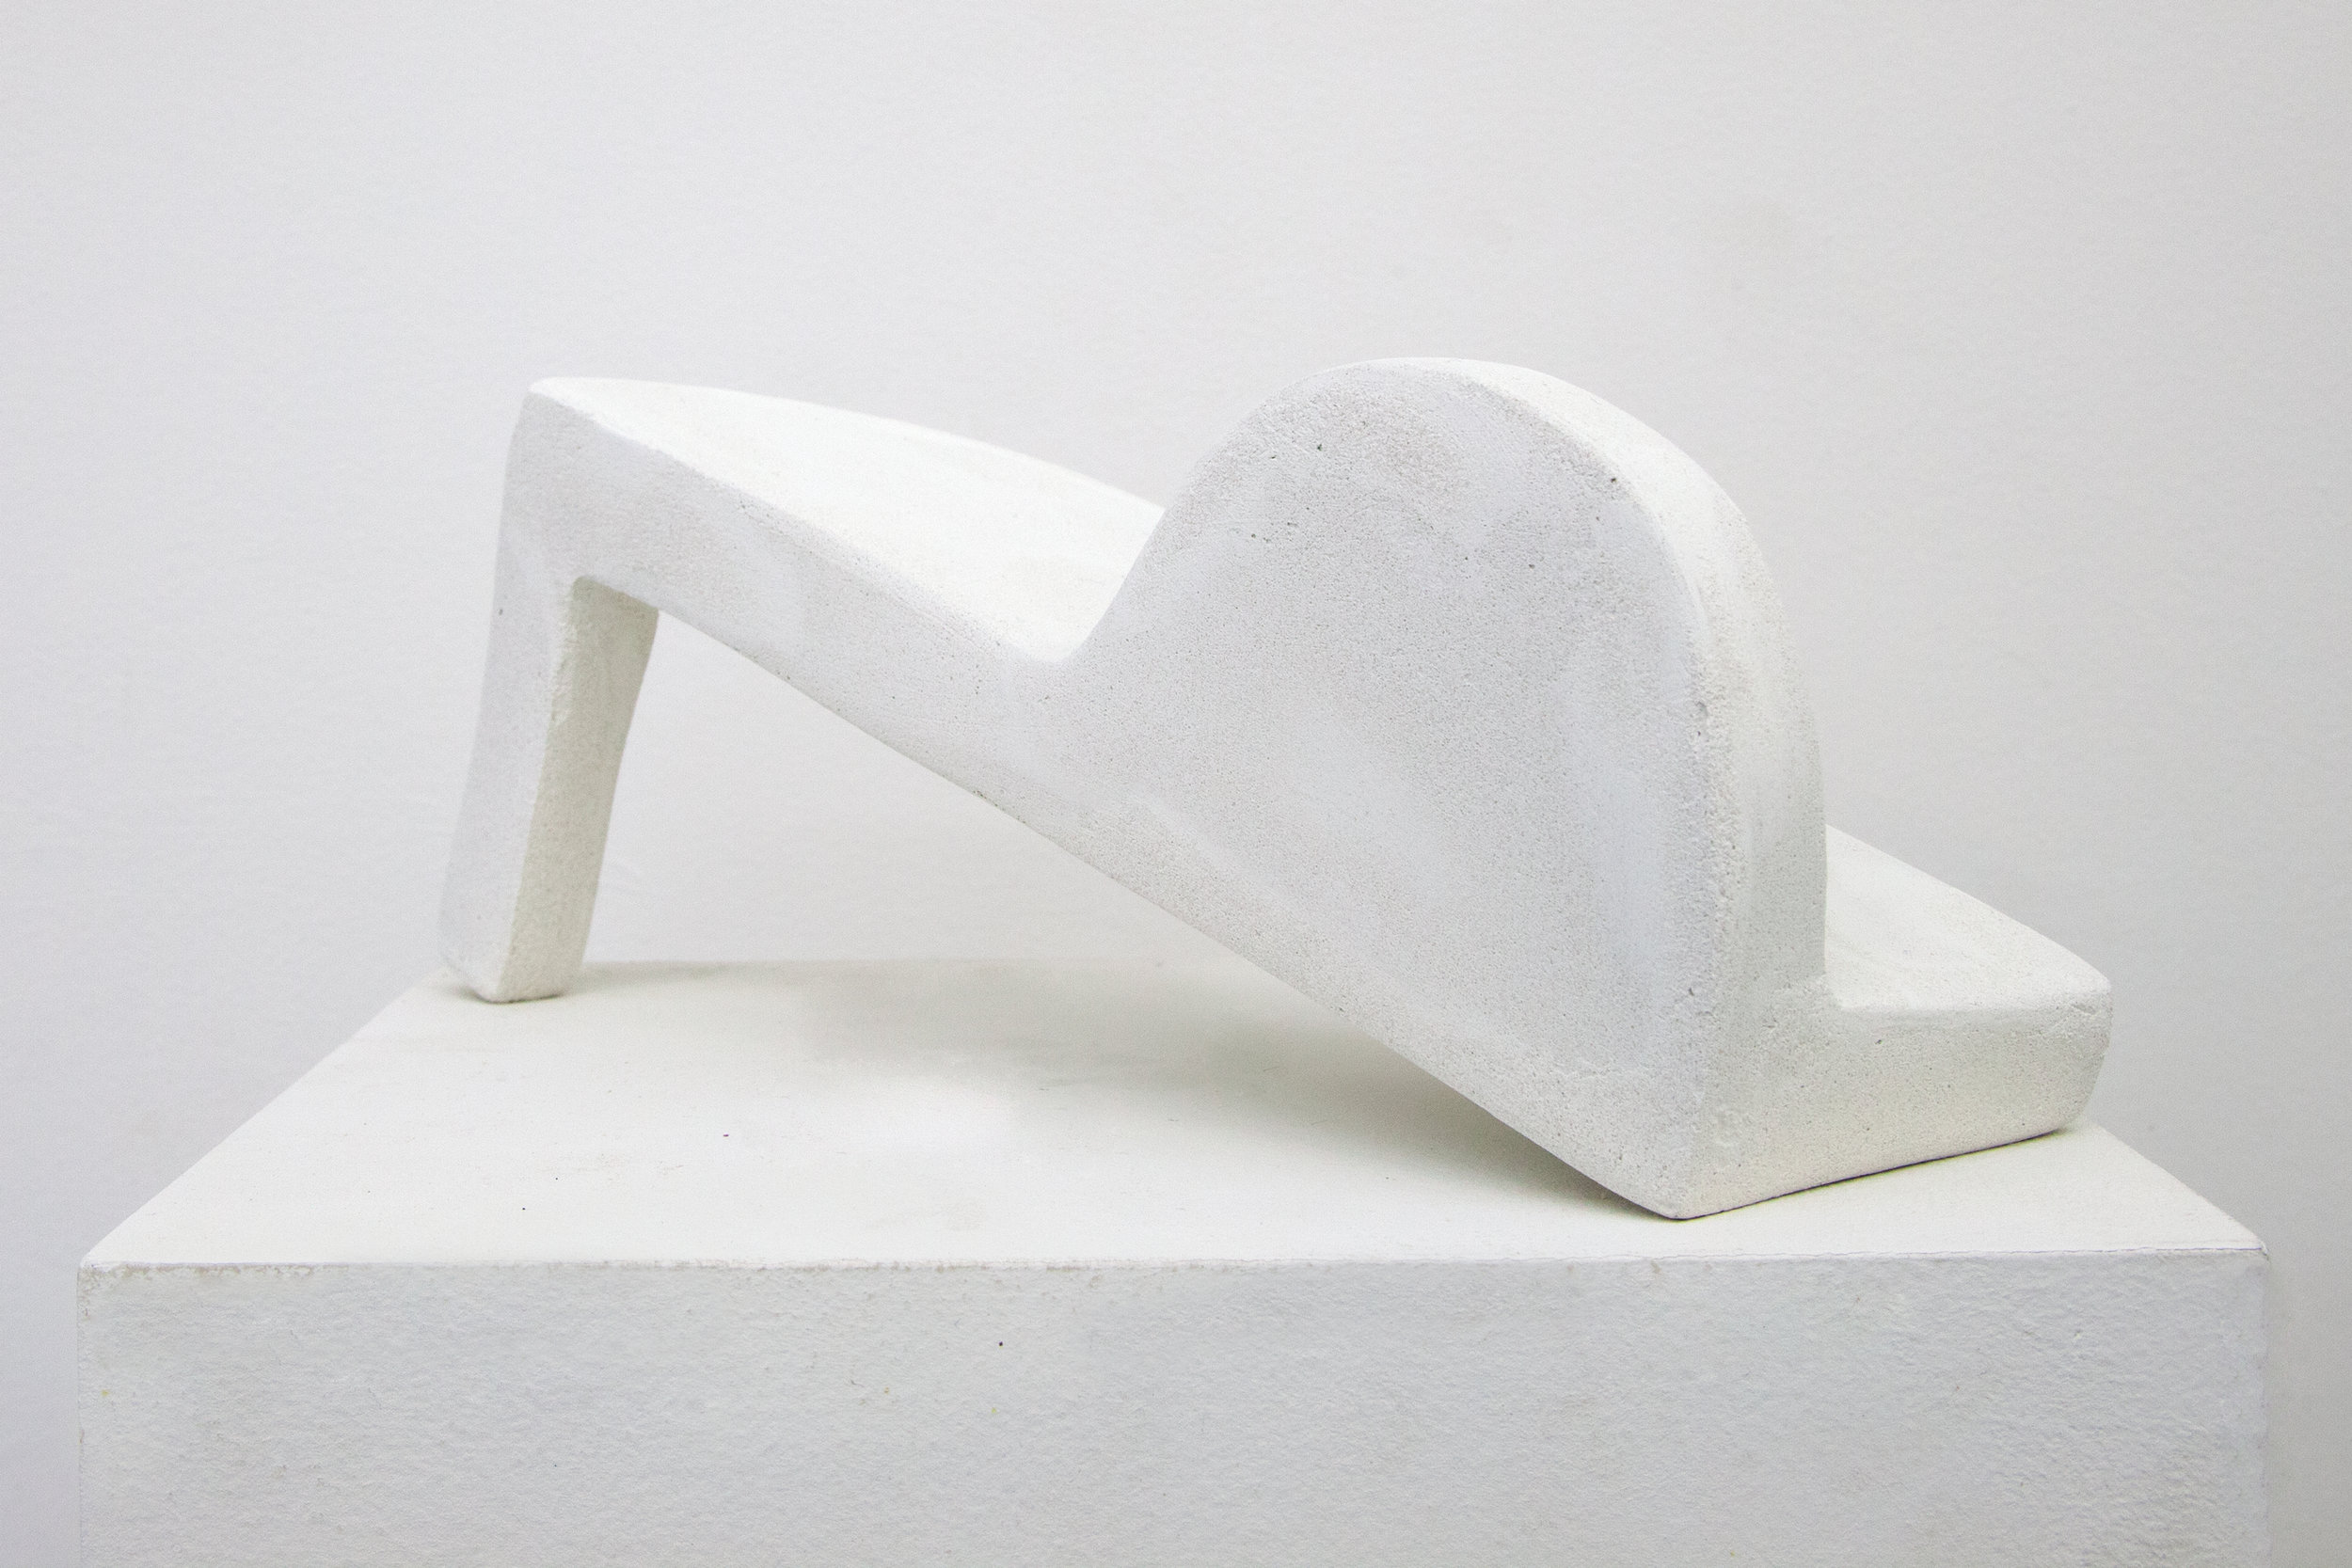 Elizabeth Atterbury,  White Note , 2018, Mortar and Basswood, 10.50 x 3.50 x 4.25 in